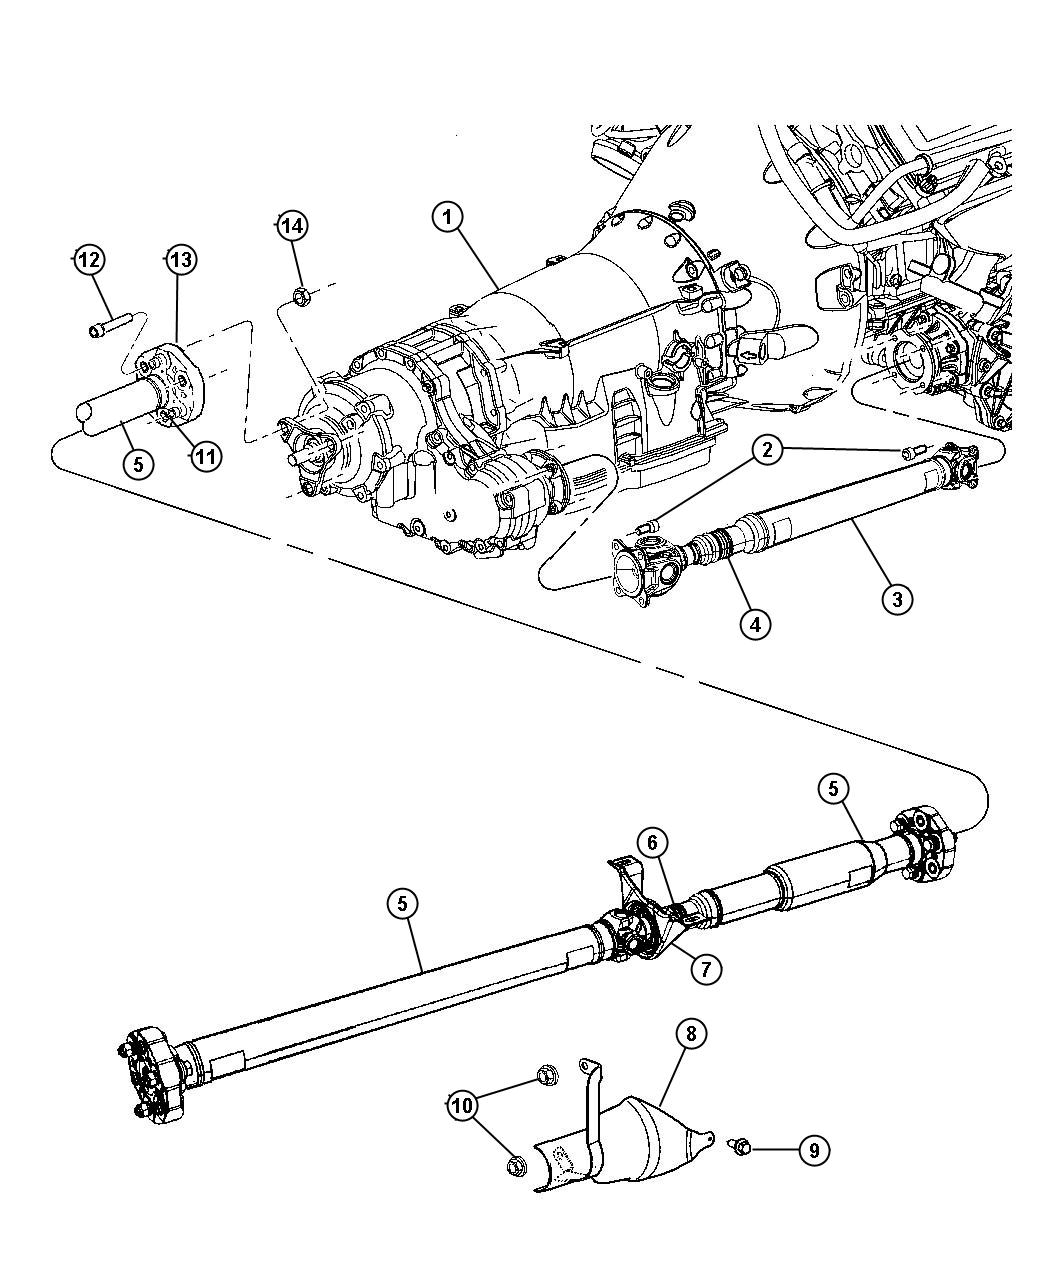 281869909247 in addition 968 Door Handle further Chrysler Pacifica Stereo Wiring Diagram Wiring Diagrams besides 281805105747 likewise Showassembly. on genuine dodge parts